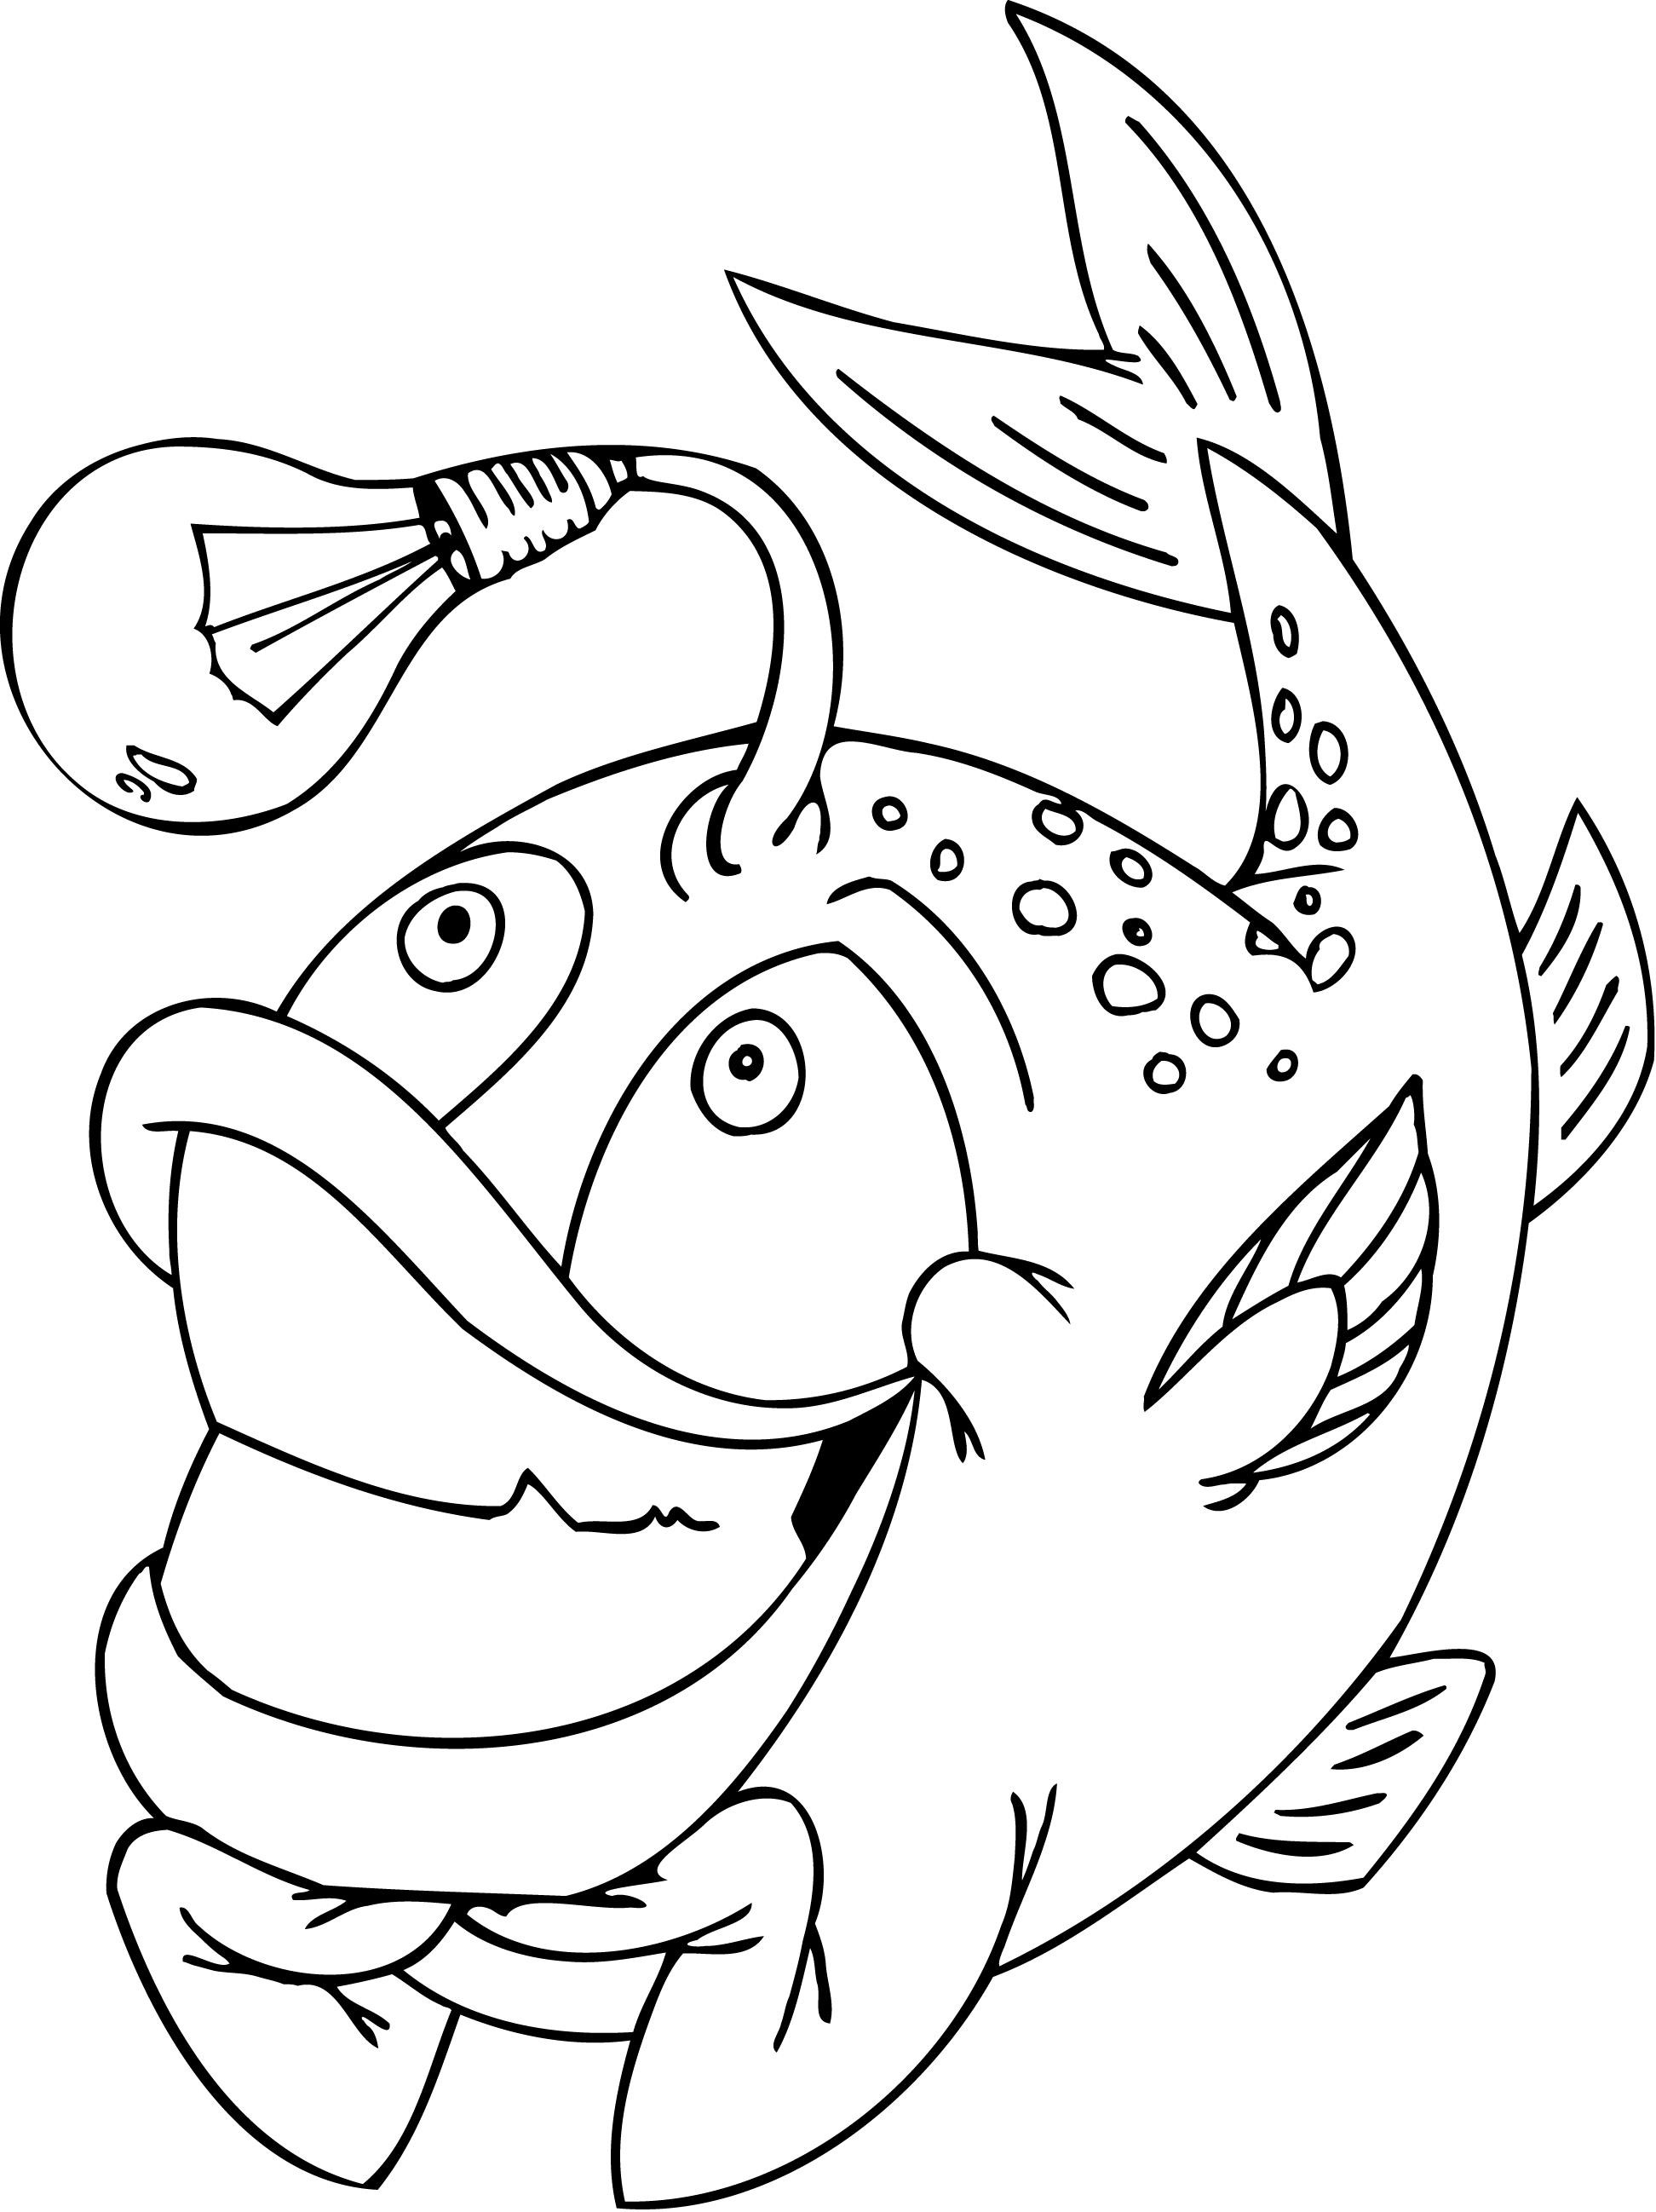 Coloring Pages Kids  Free Printable Funny Coloring Pages For Kids